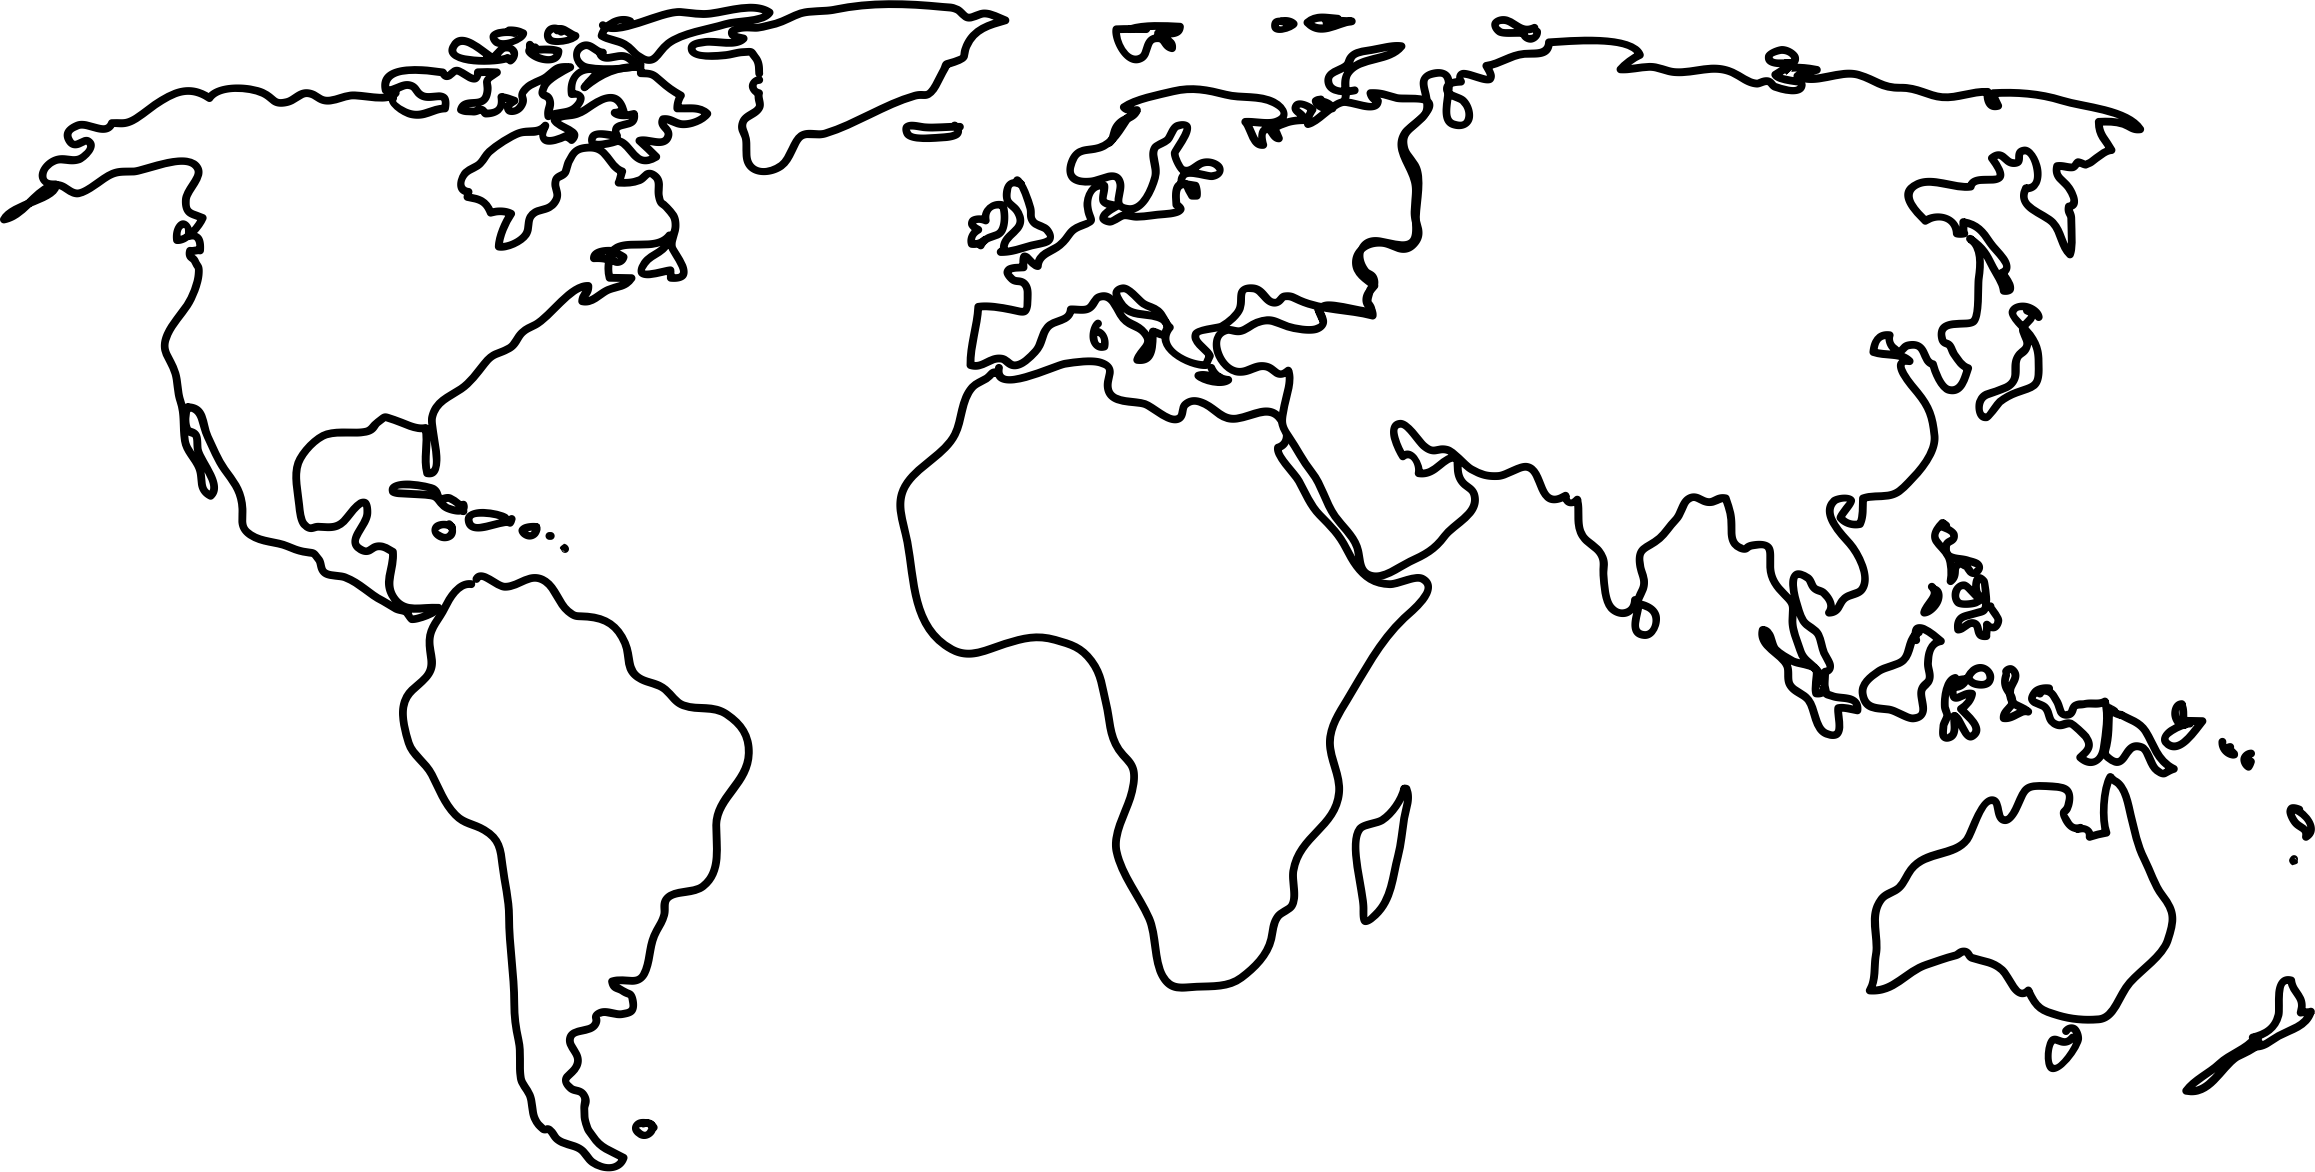 World map by jkarthik. Continents drawing graphic black and white